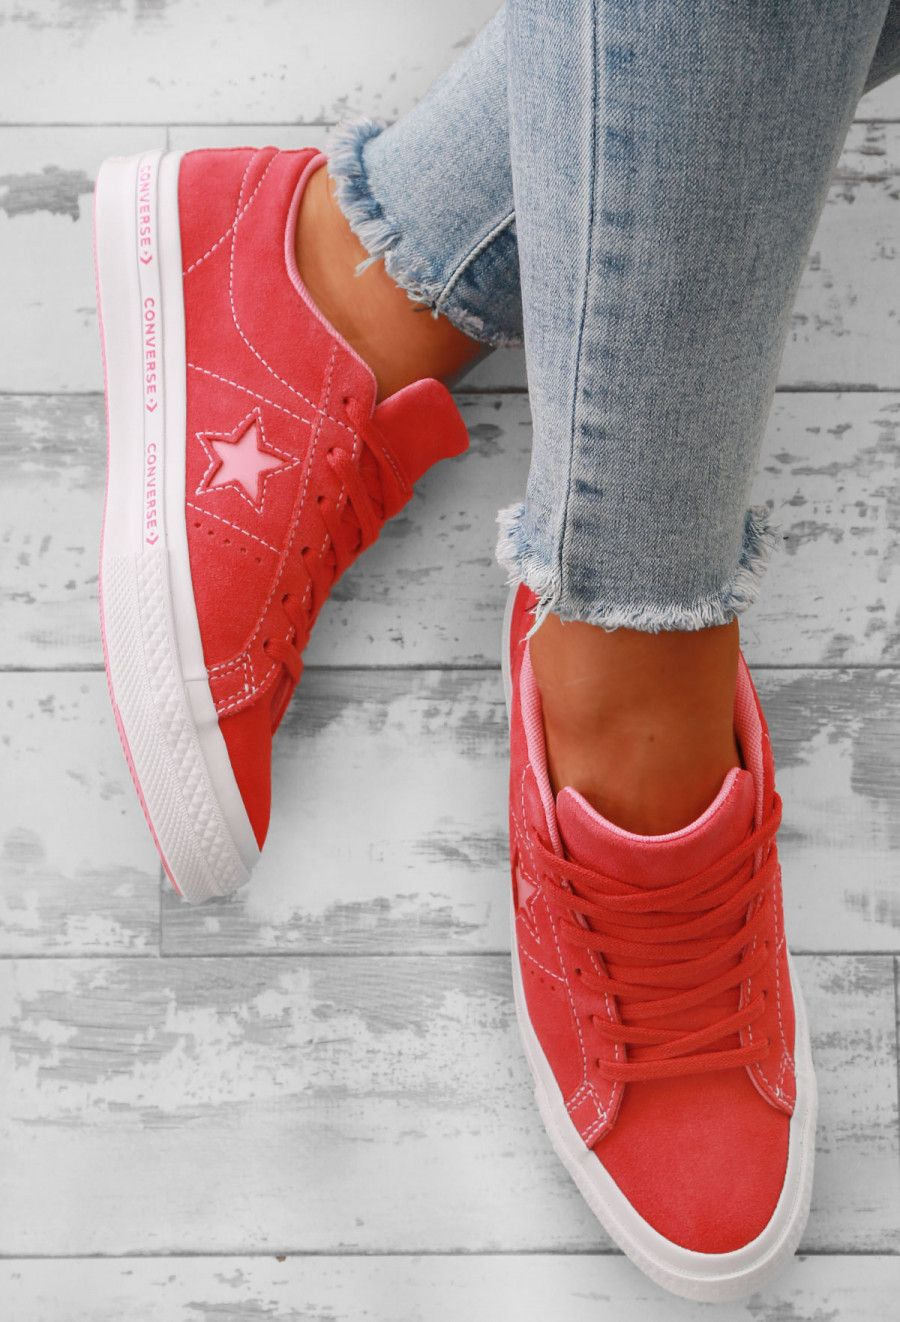 Converse One Star Coral Suede Trainers  824bfe64b